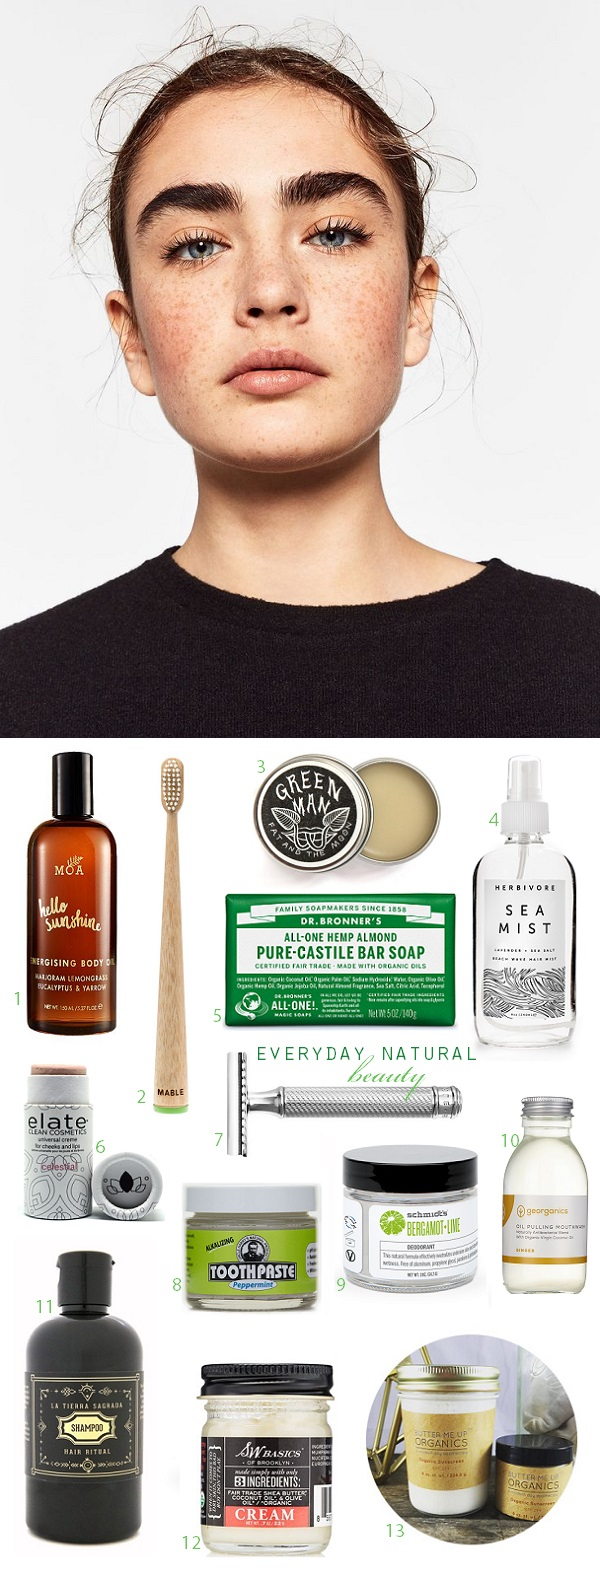 ExPress-o: Sustainable Natural Everyday Beauty